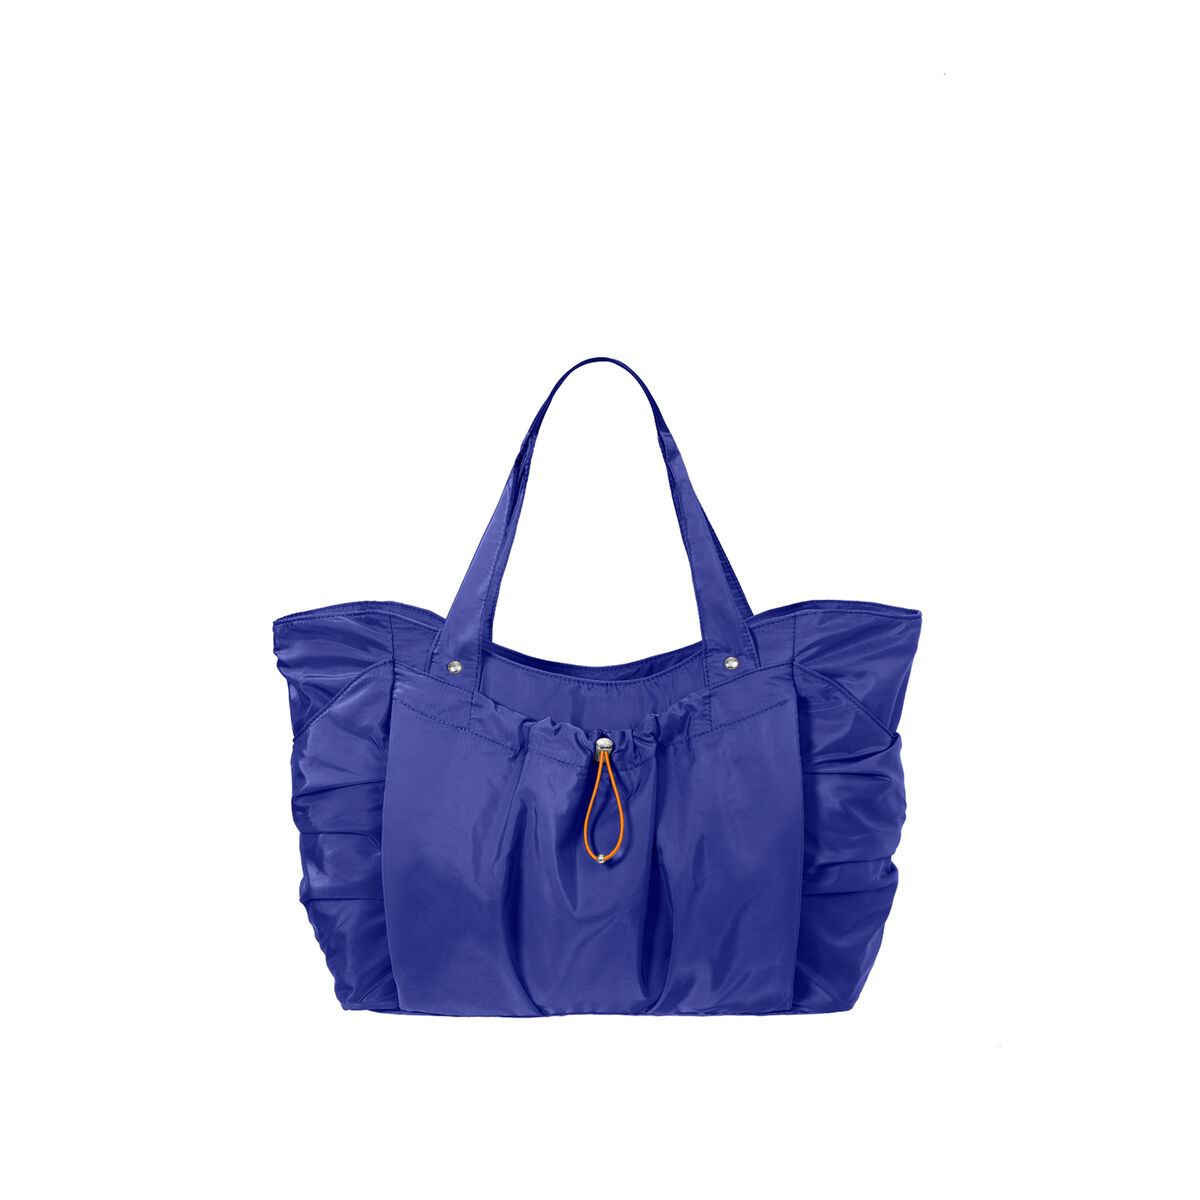 balance small yoga tote bag